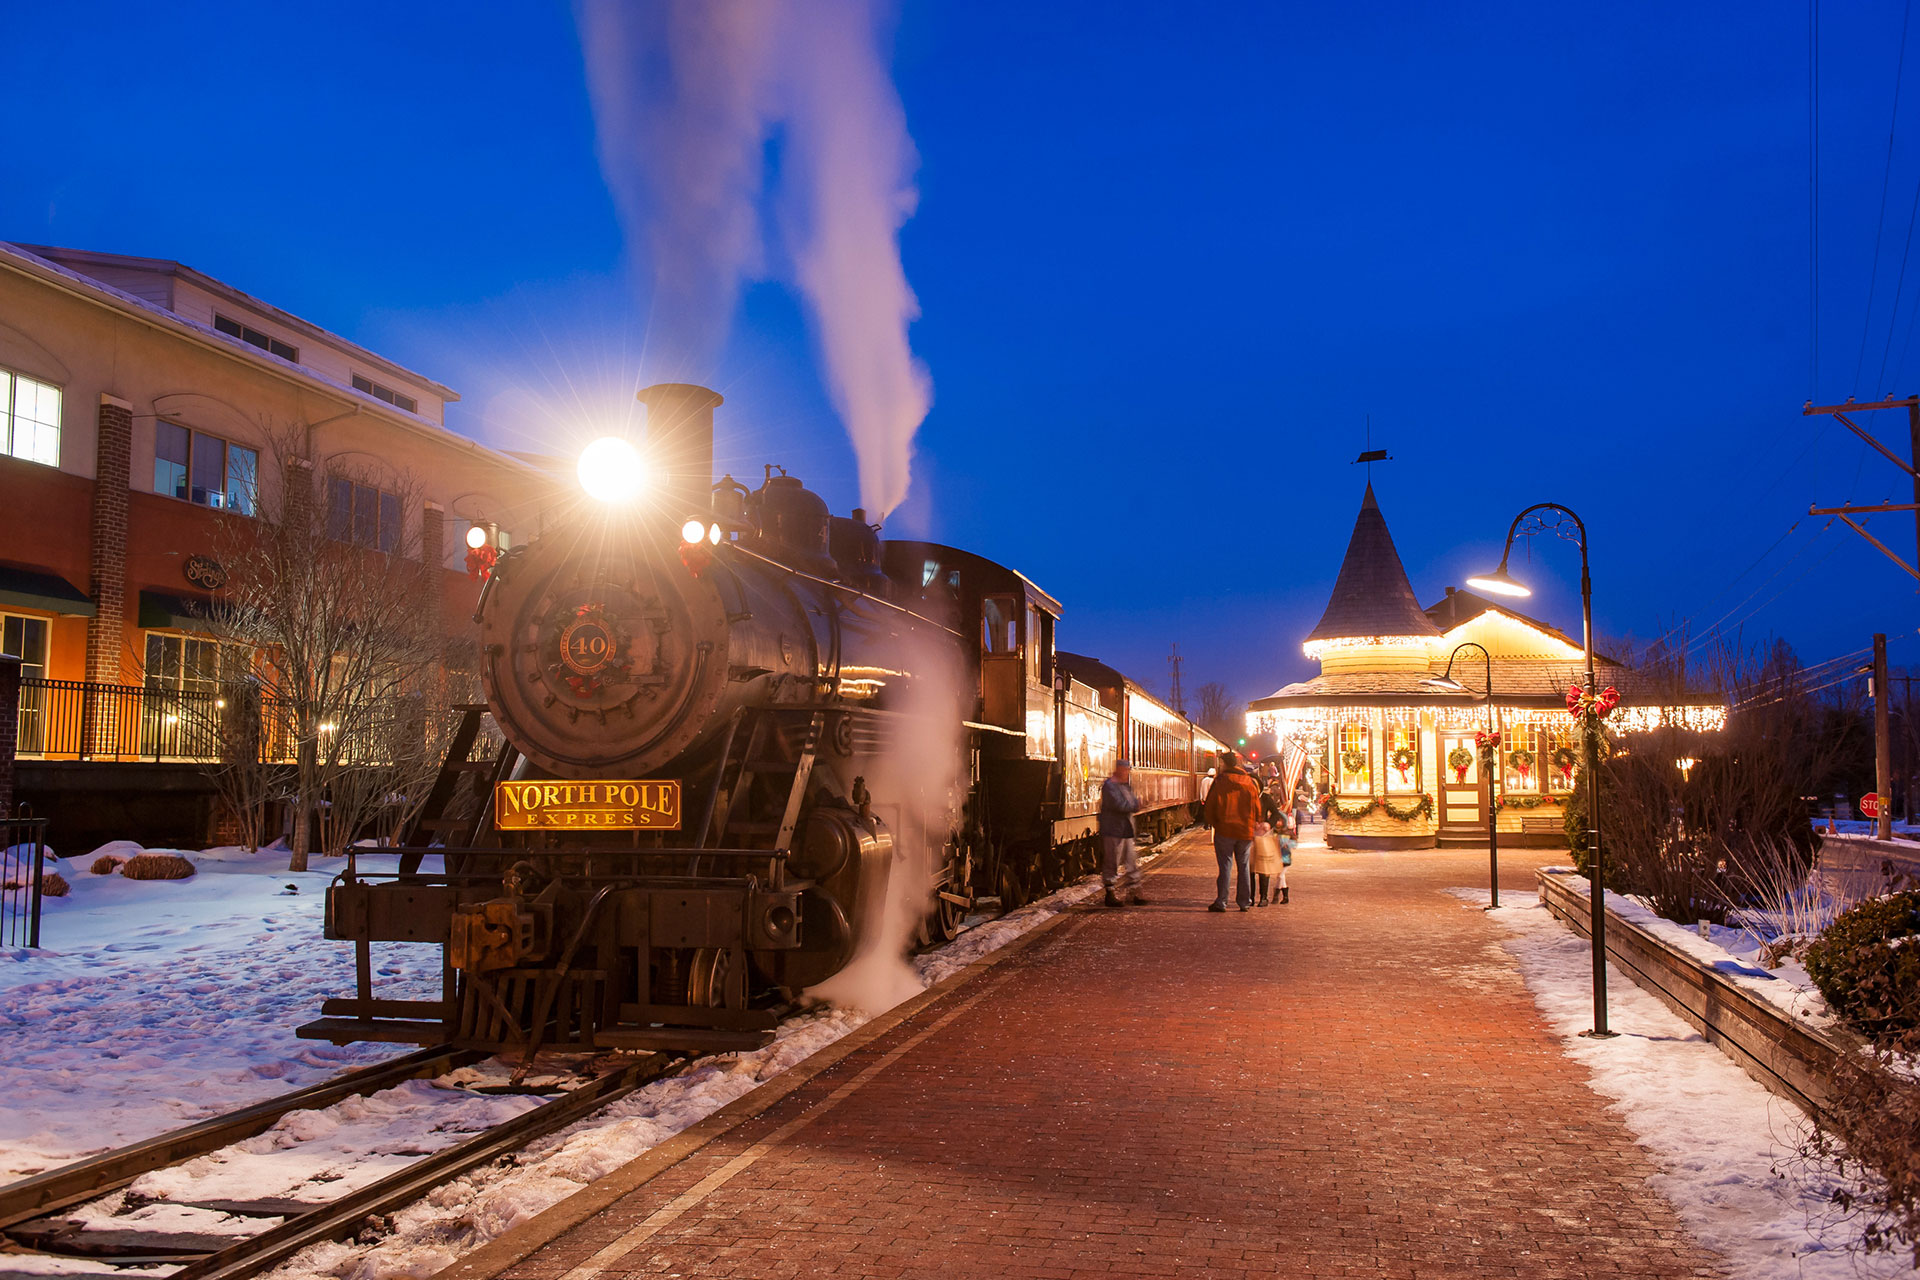 New Hope & Ivyland Railroad's North Pole Express; Courtesy of Visit Bucks County